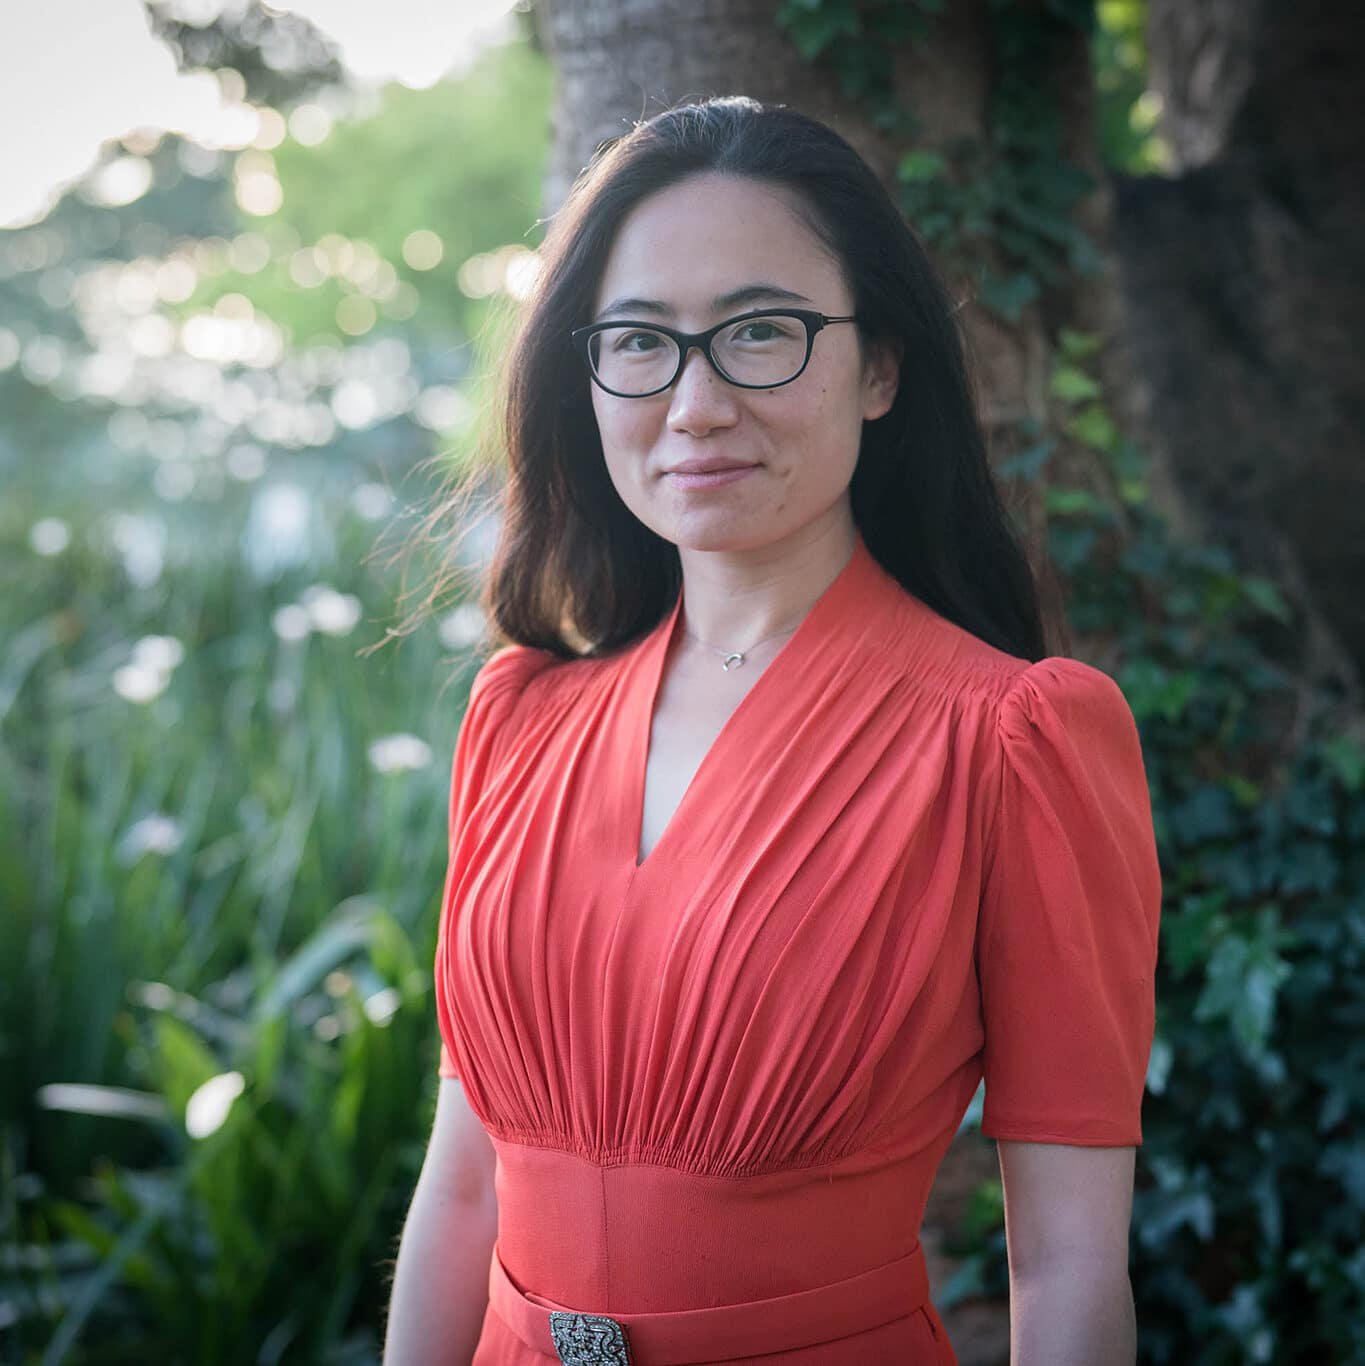 Helena Liu, the creator of this blog, stands in a forest in a coral dress ready to fight for social justice